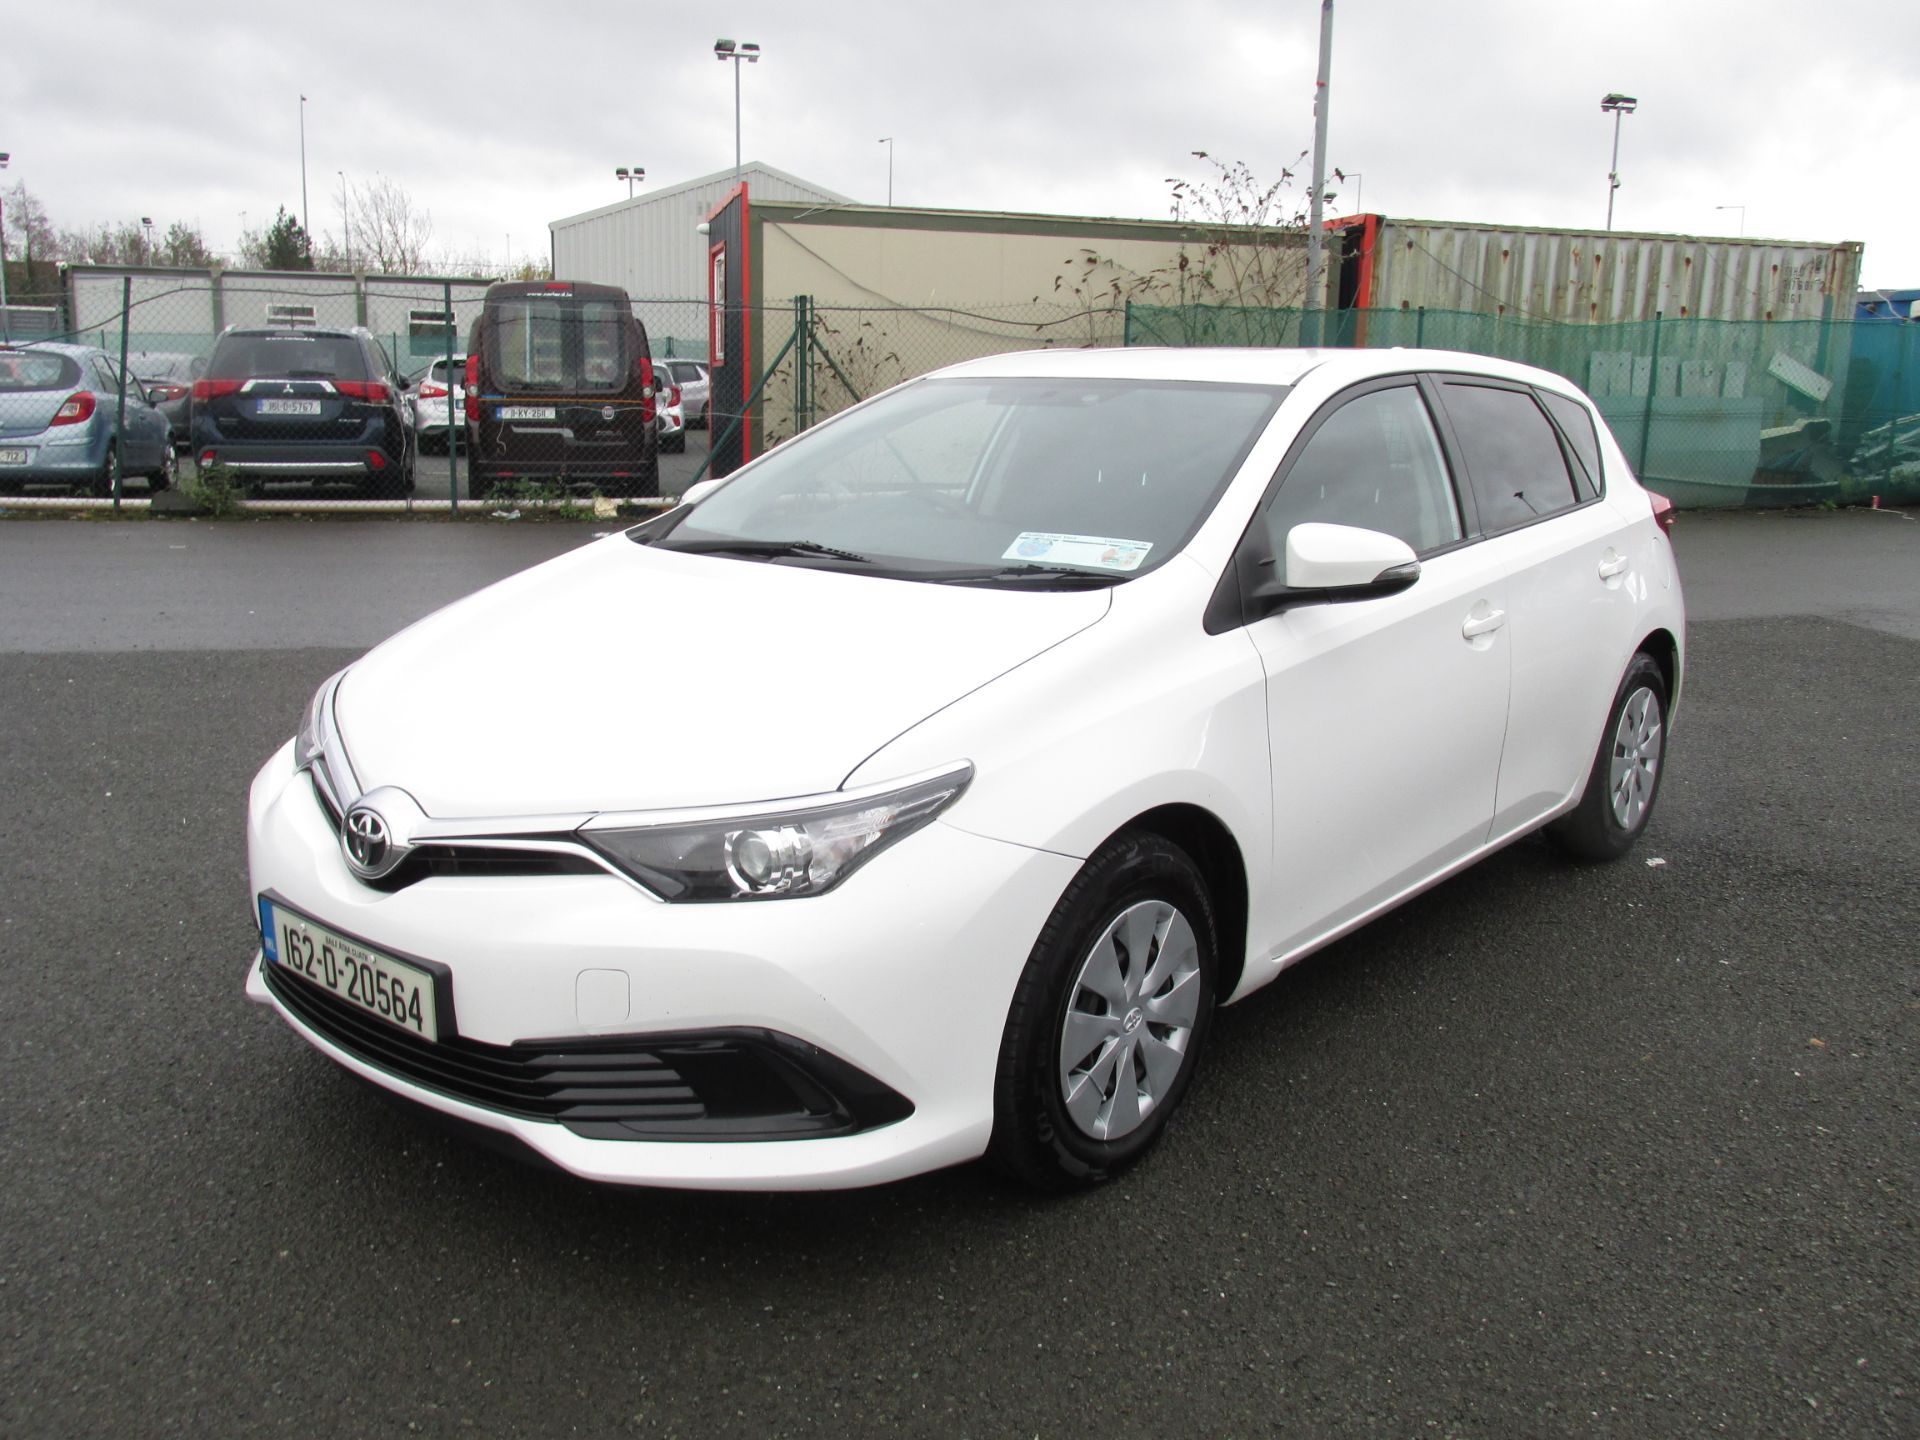 2016 Toyota Auris 1.4d-4d Terra 4DR click and deliver call sales for more info (162D20564) Image 3